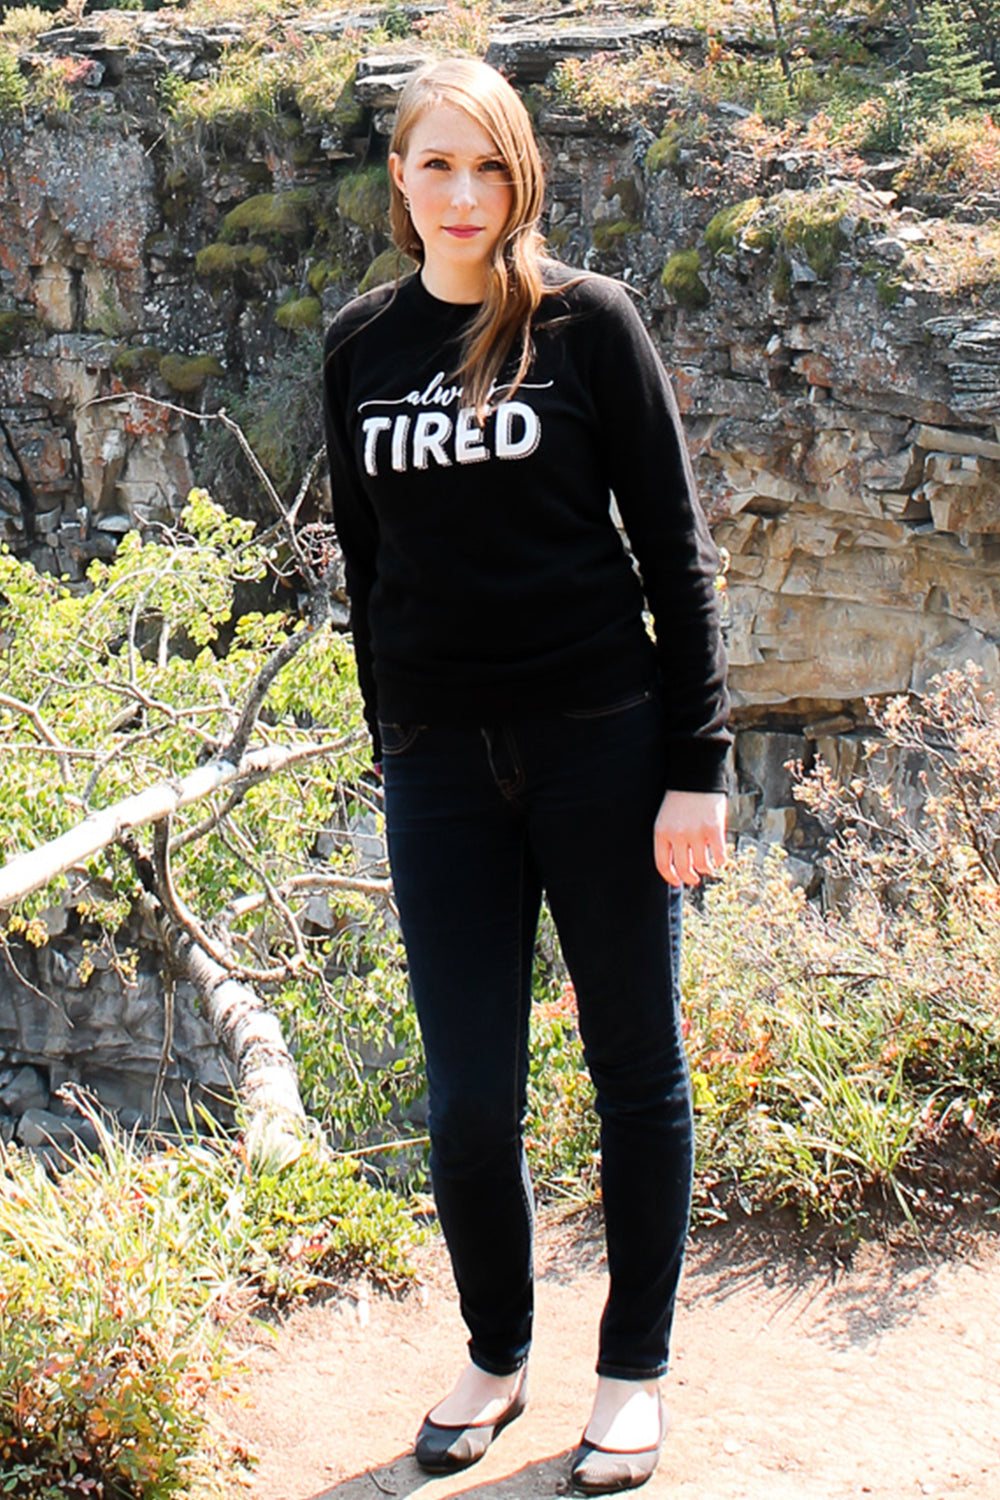 Always Tired crewneck sweatshirt. Chronic illness clothing. Fibromyalgia, chronic fatigue syndrome. Pretty Sick Designs.